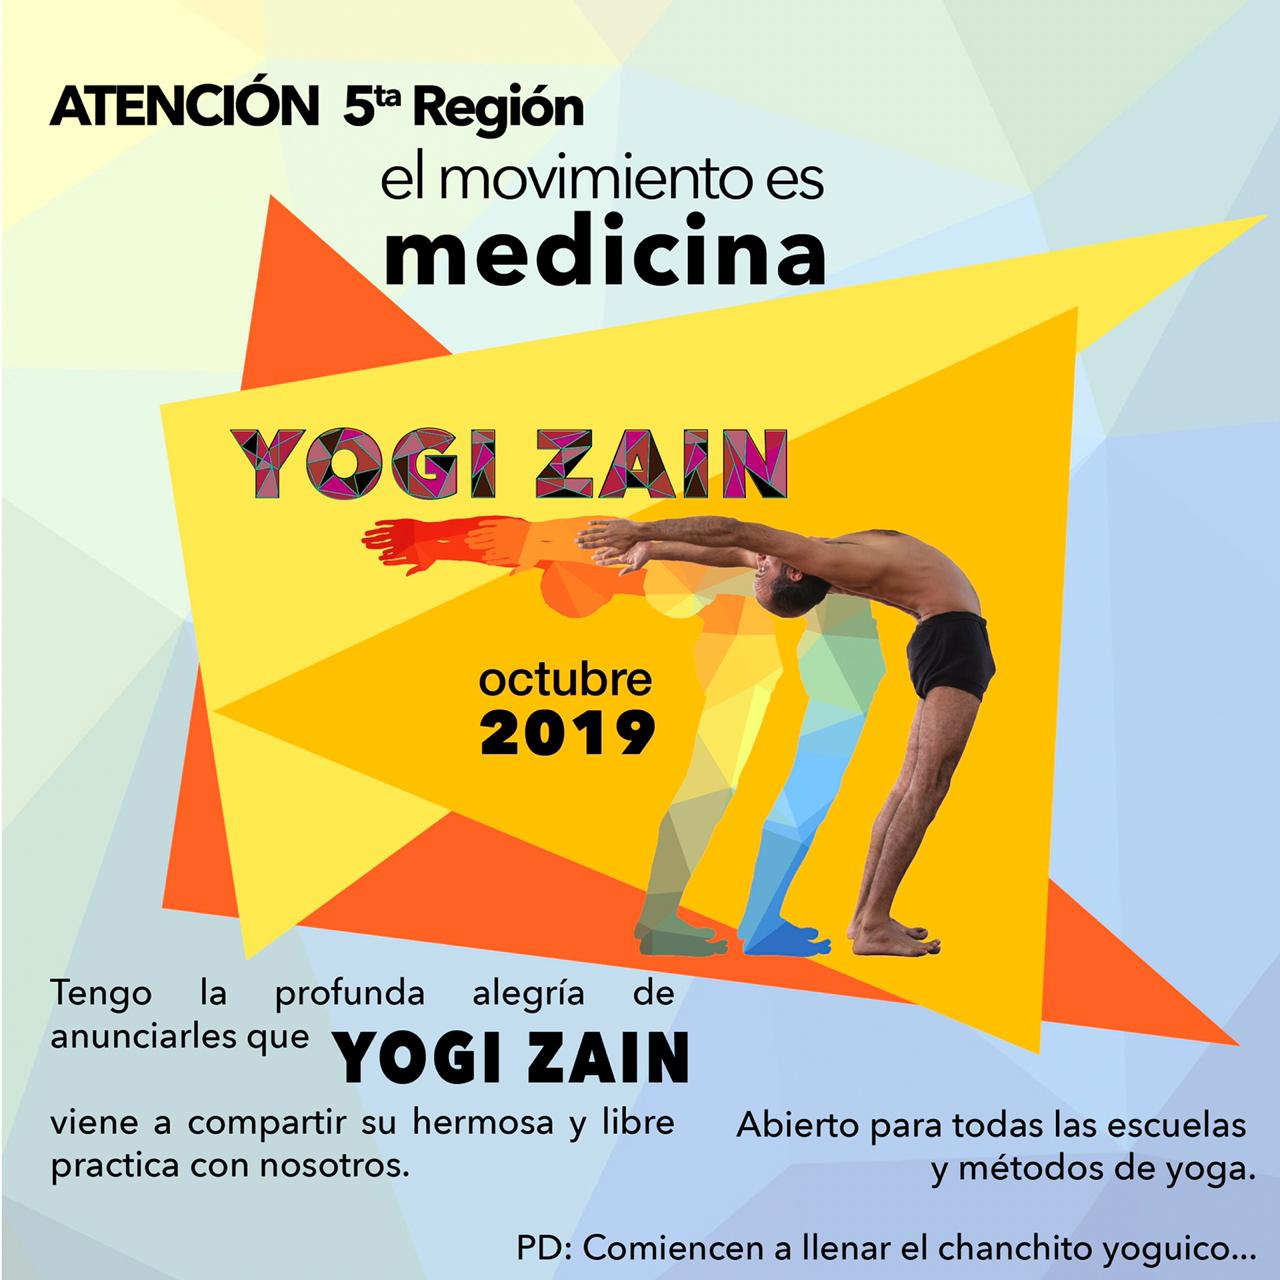 yogi-zain-movement-is-medicine.jpg